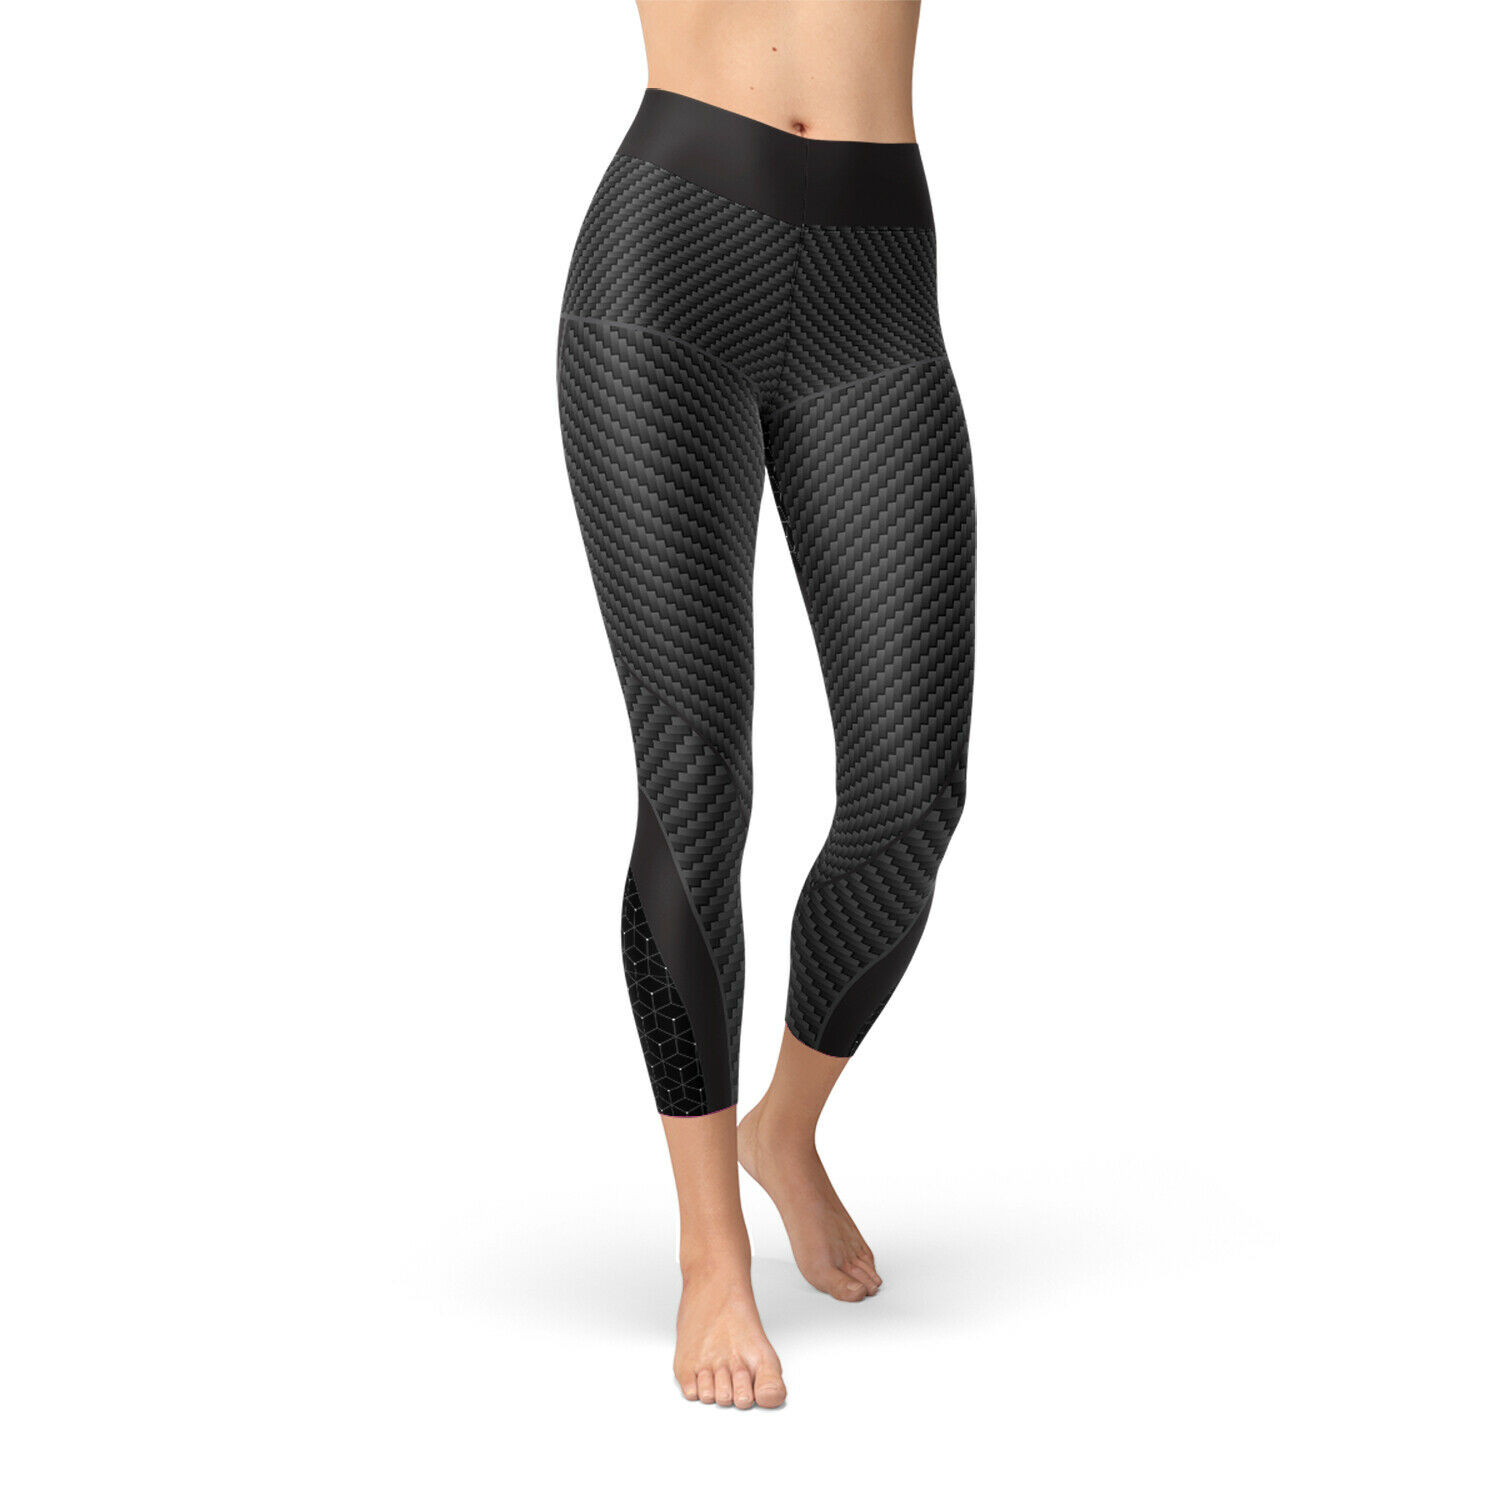 Carbon Fiber Yoga  Capri Leggings For Women High Waisted Mid Calf Length Pants  professional integrated online shopping mall